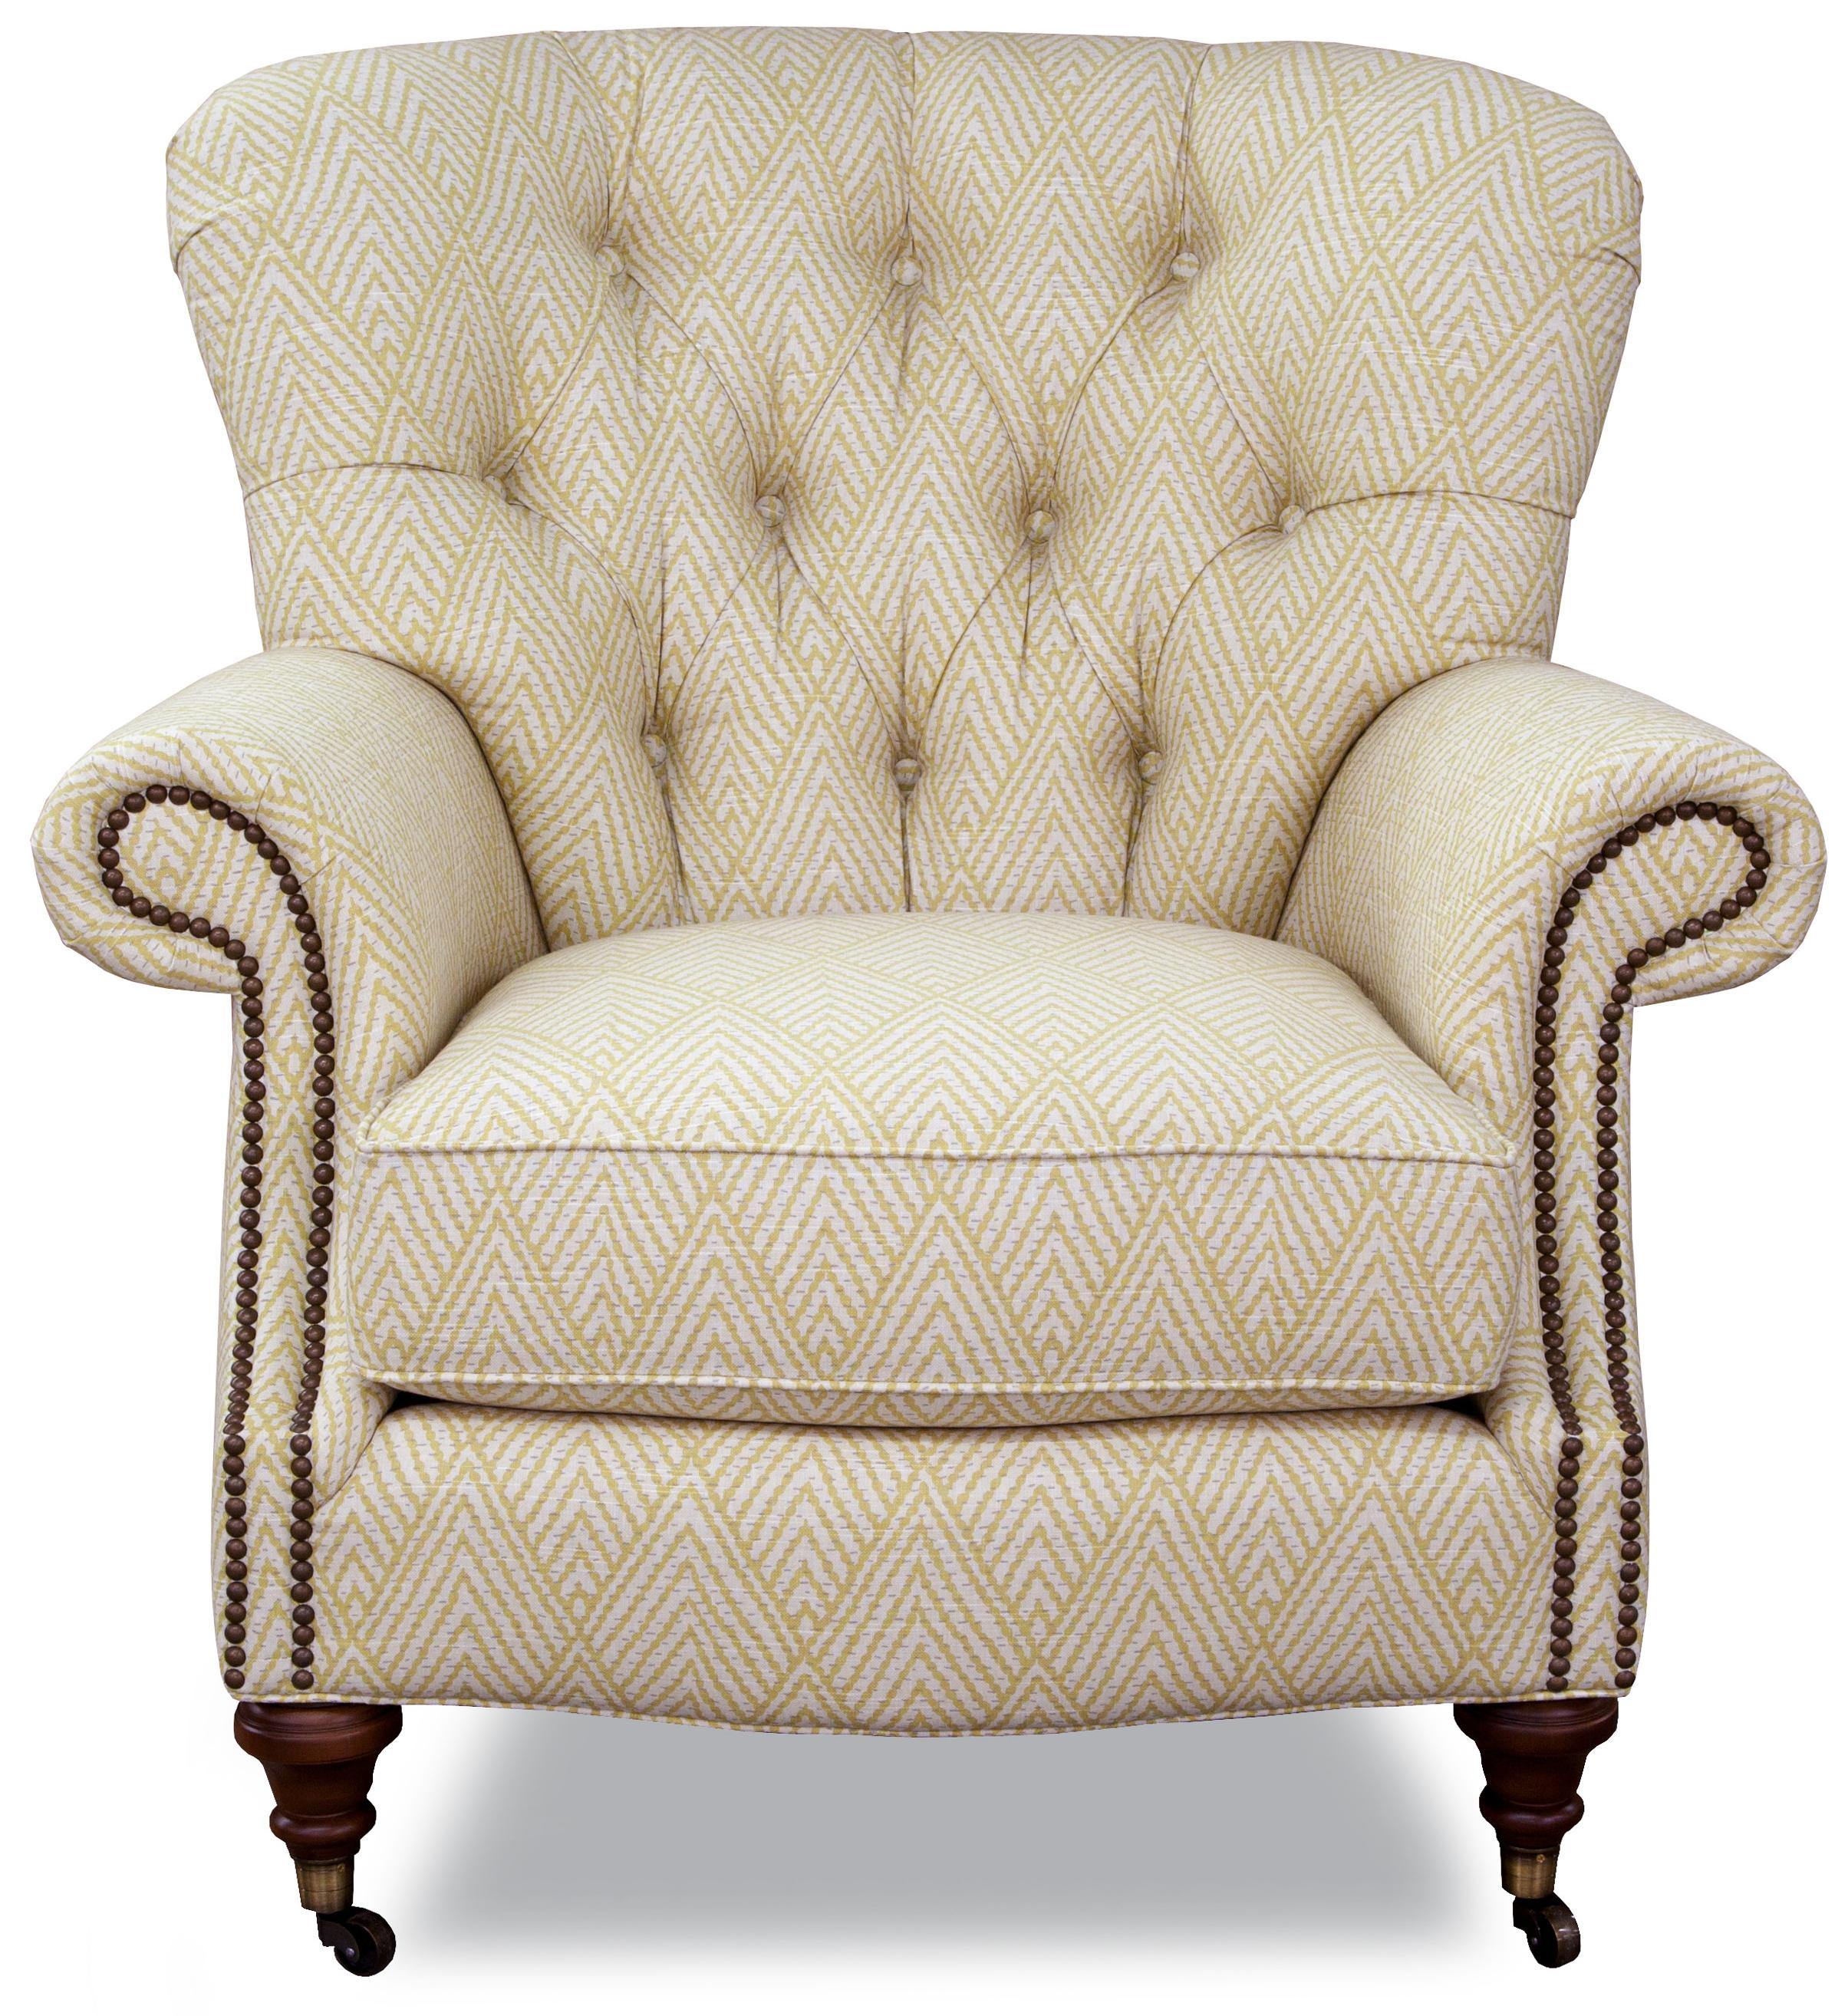 7366 Upholstered Chair by Geoffrey Alexander at Sprintz Furniture